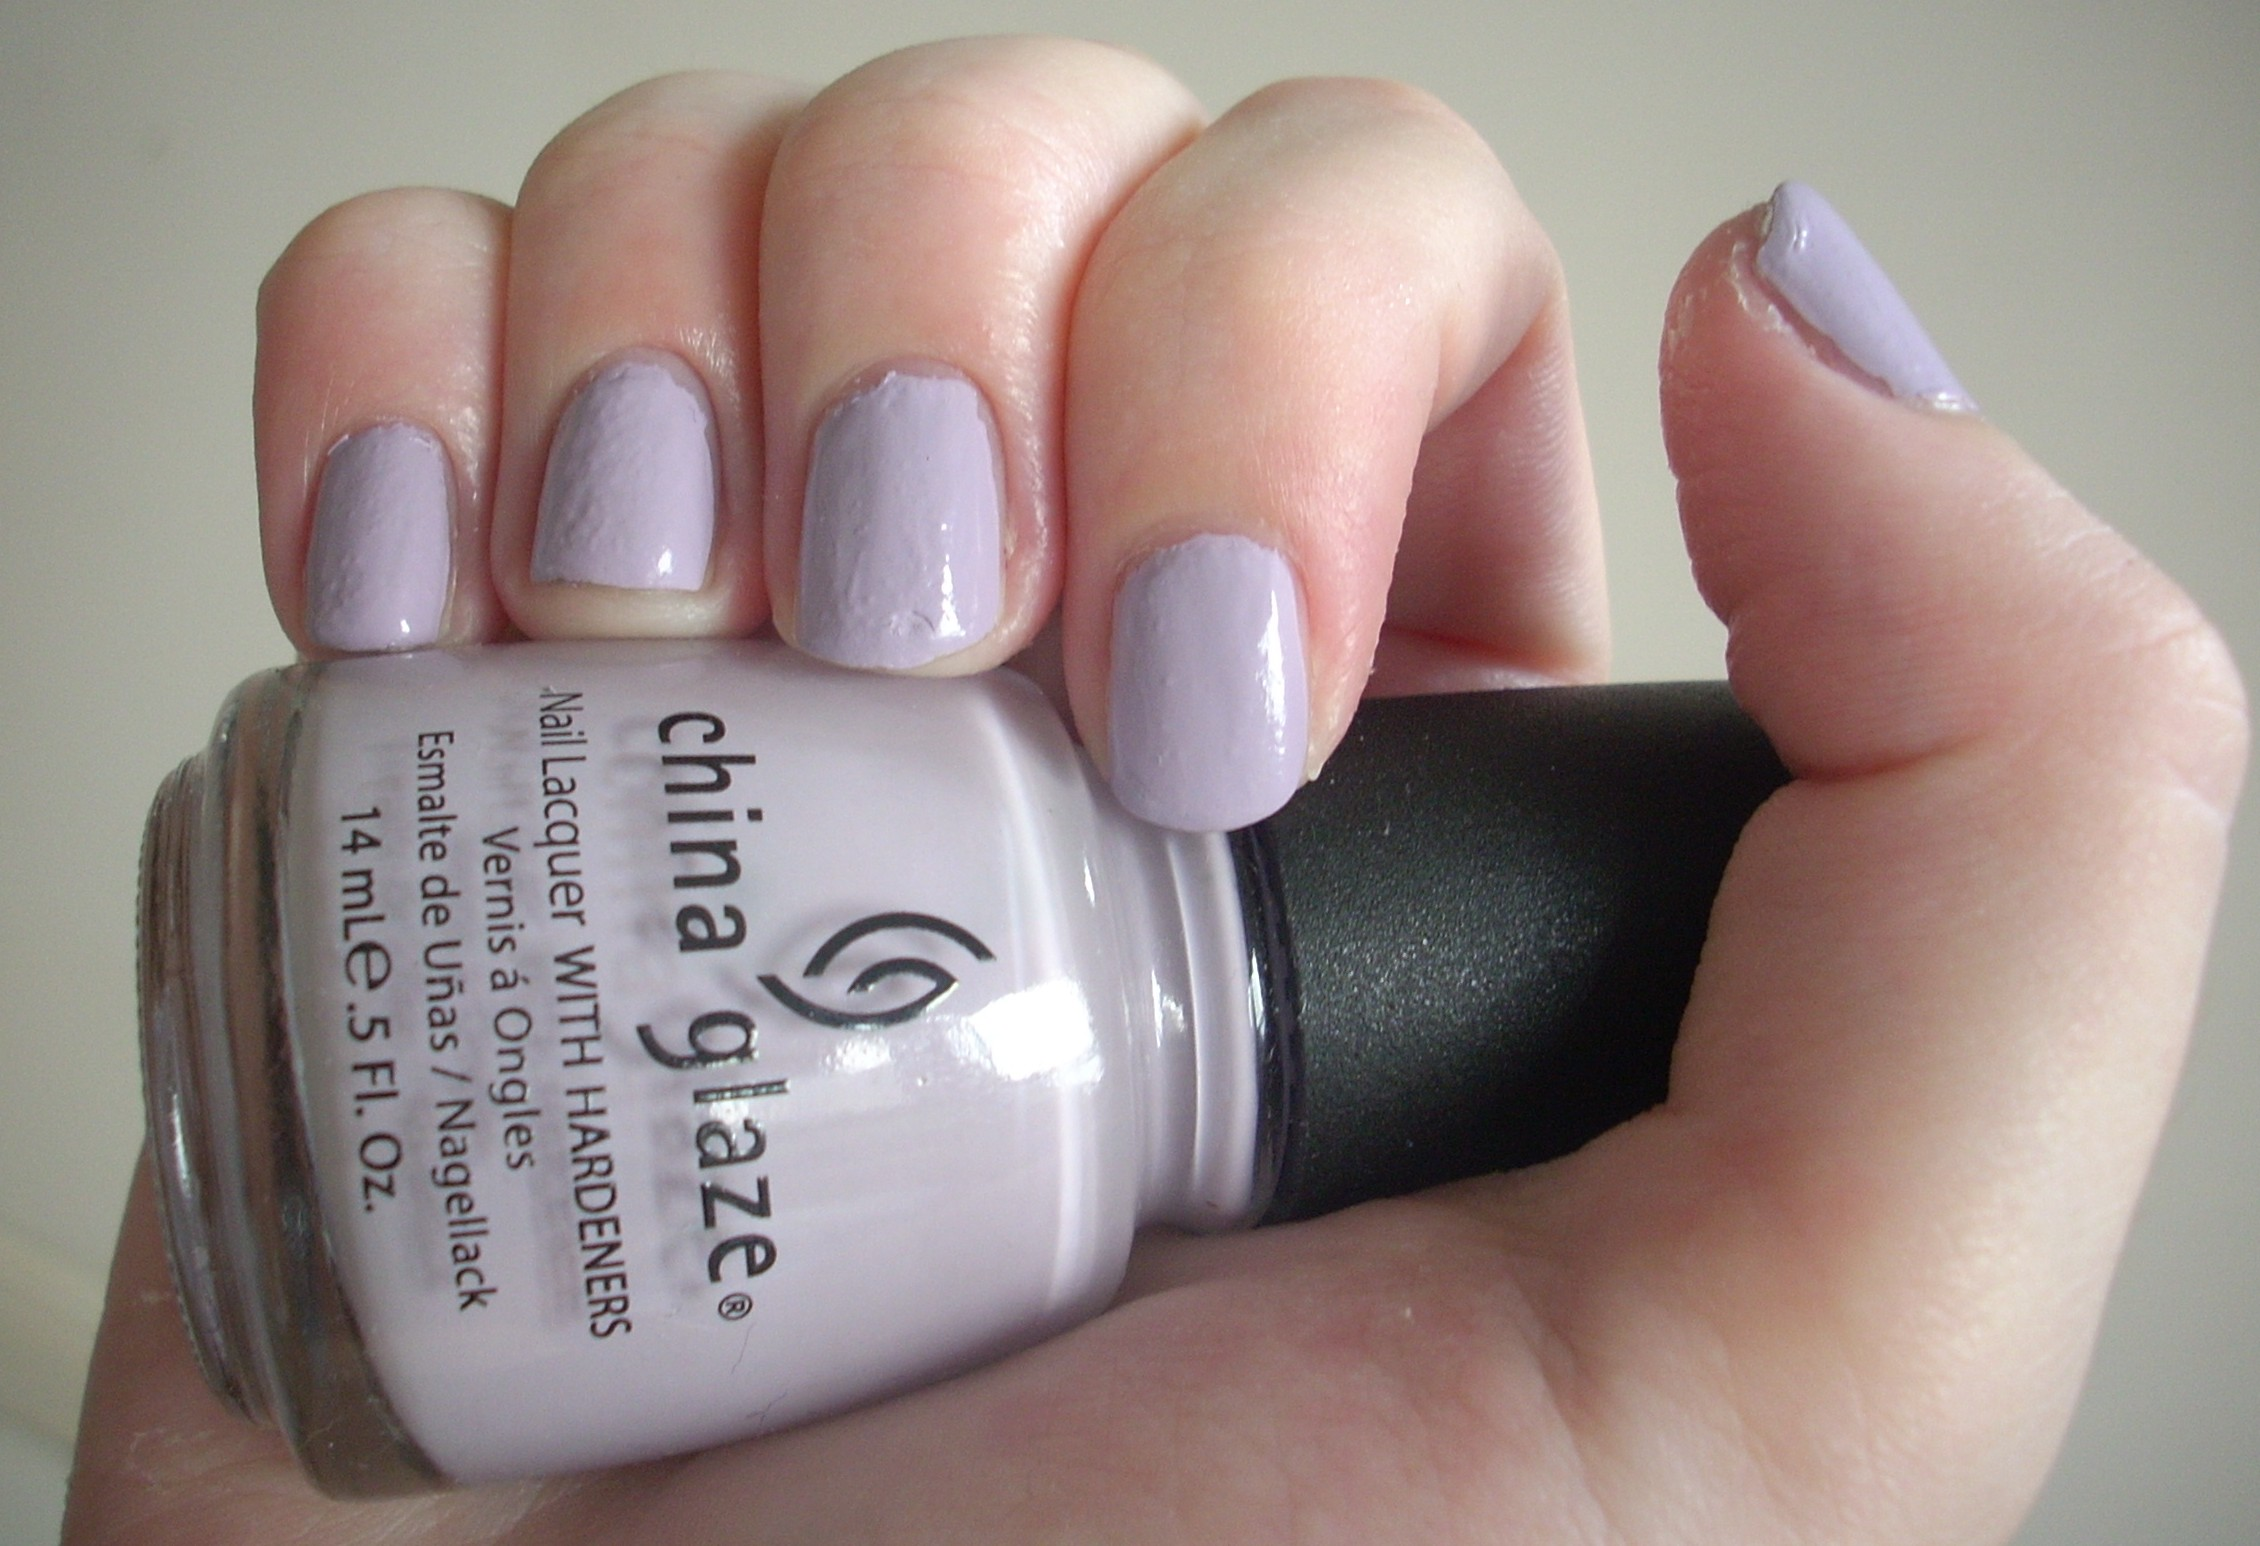 China Glaze Light As Air nail polish review | Through The Looking Glass